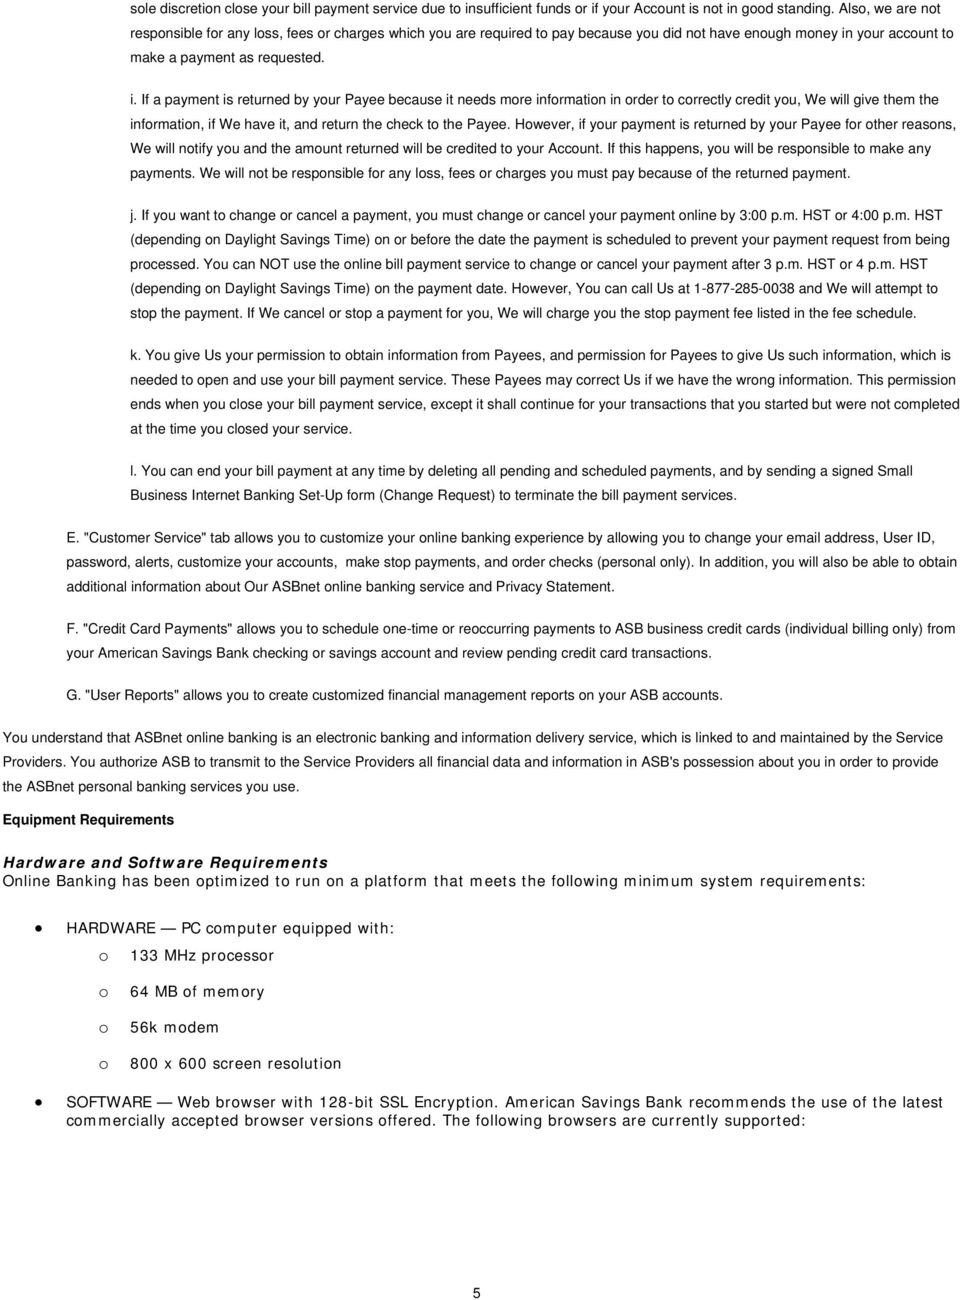 Consumer ebanking for Business Set-Up Form - PDF